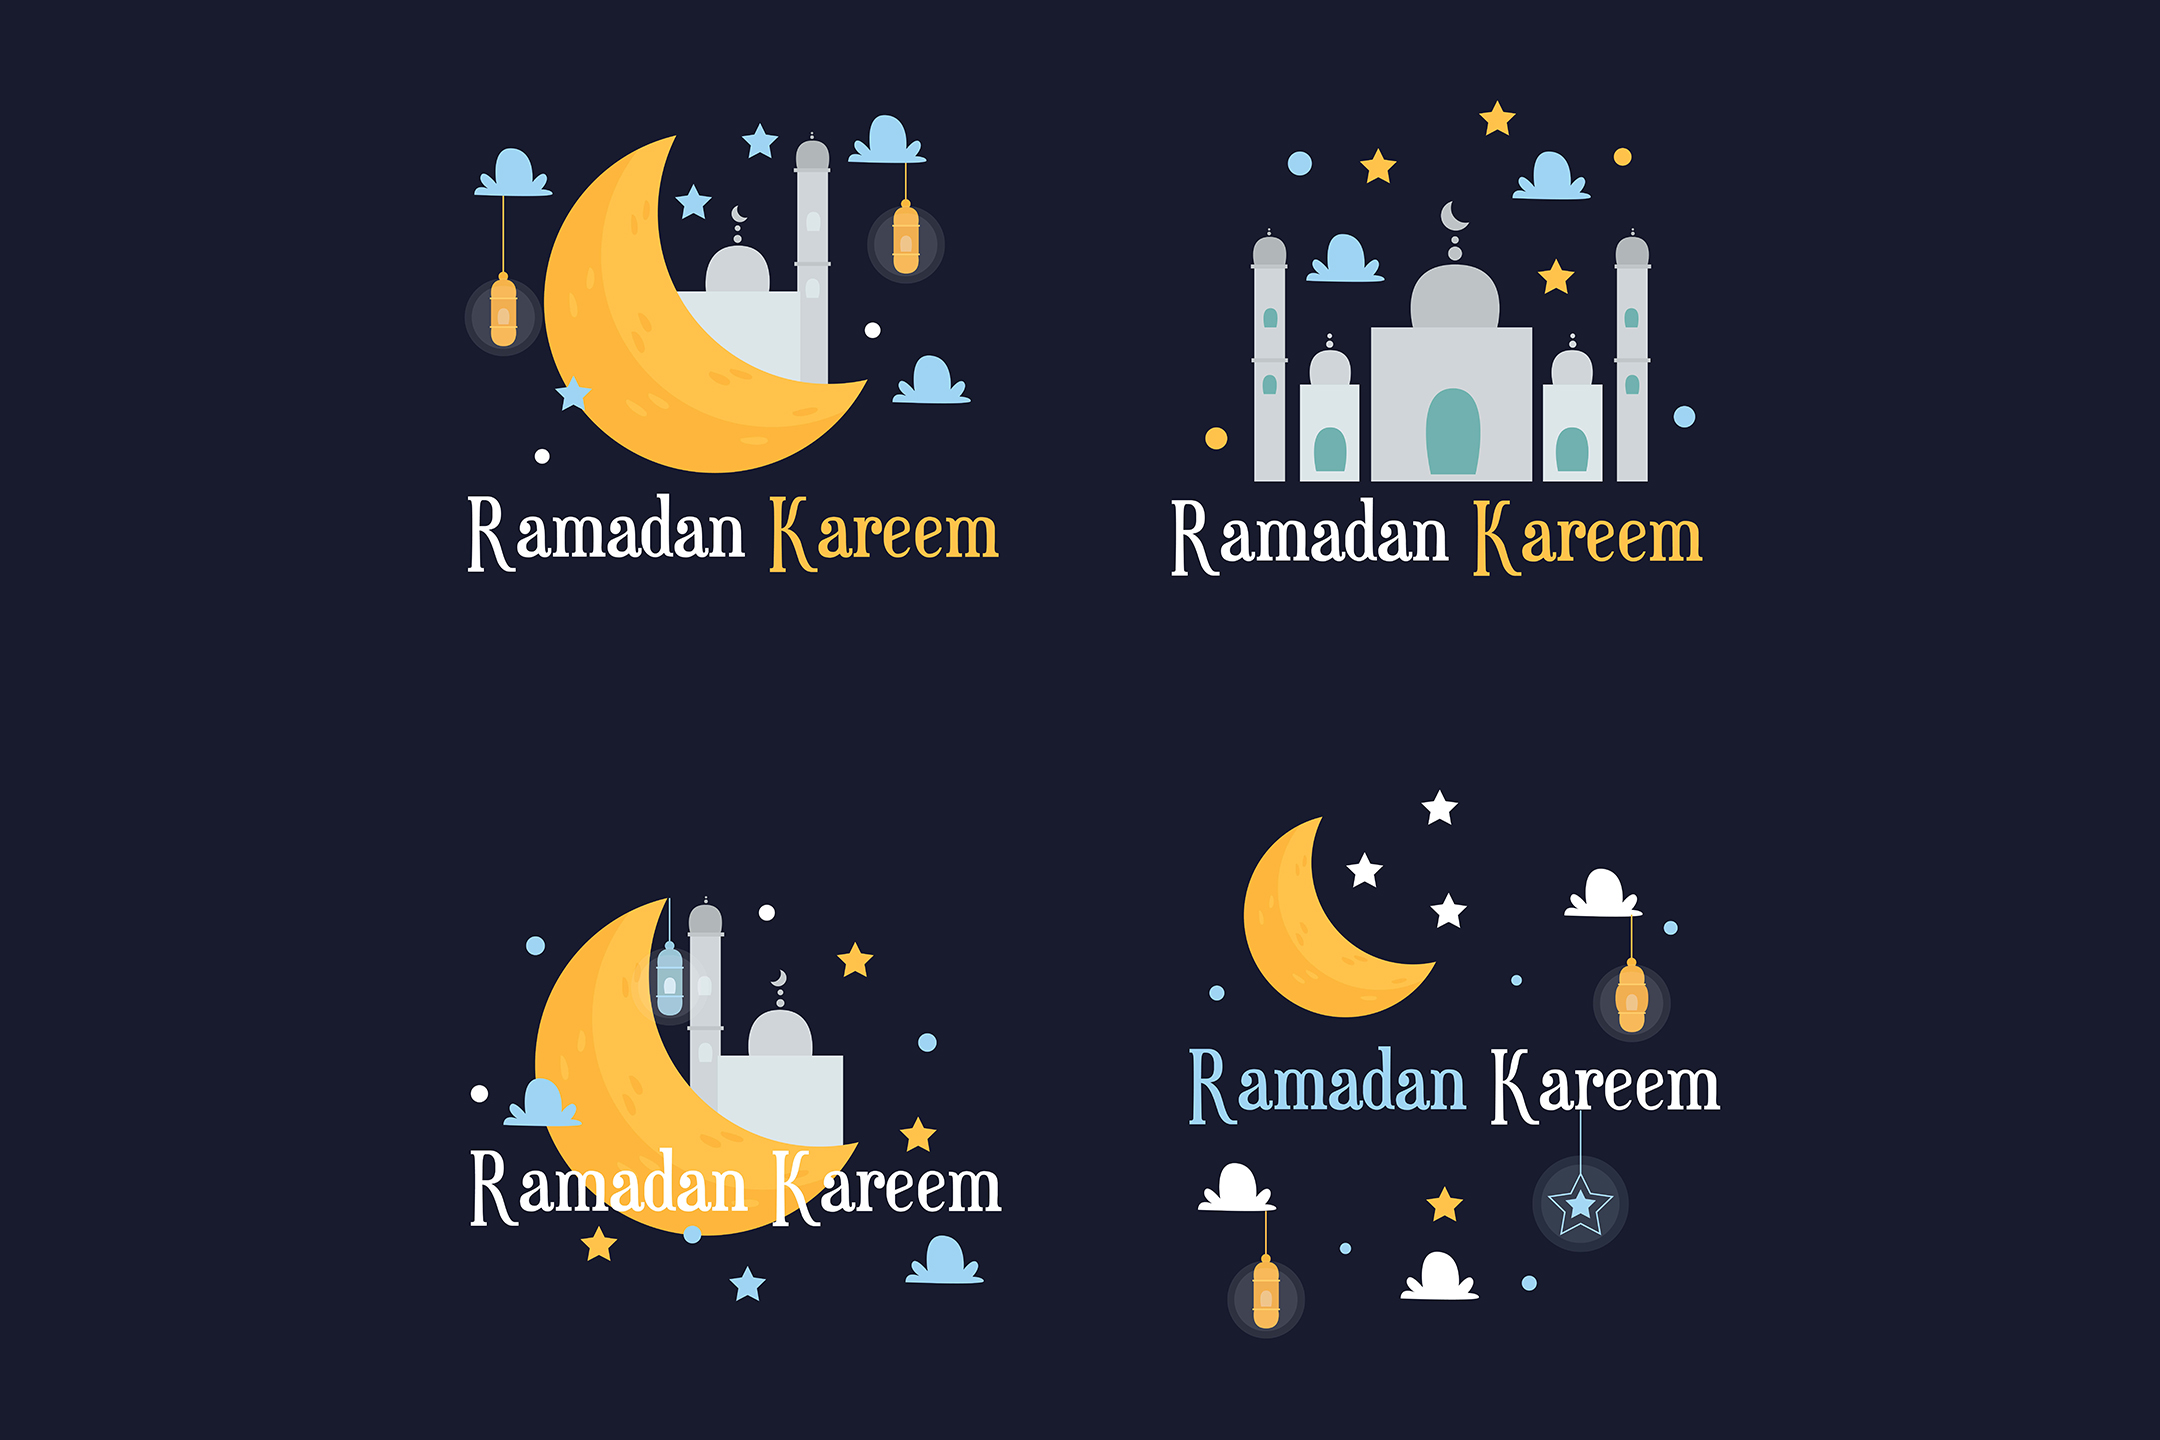 Download Free Ramadan Kareem Lettering Colorful Sign Graphic By Aprlmp276 for Cricut Explore, Silhouette and other cutting machines.